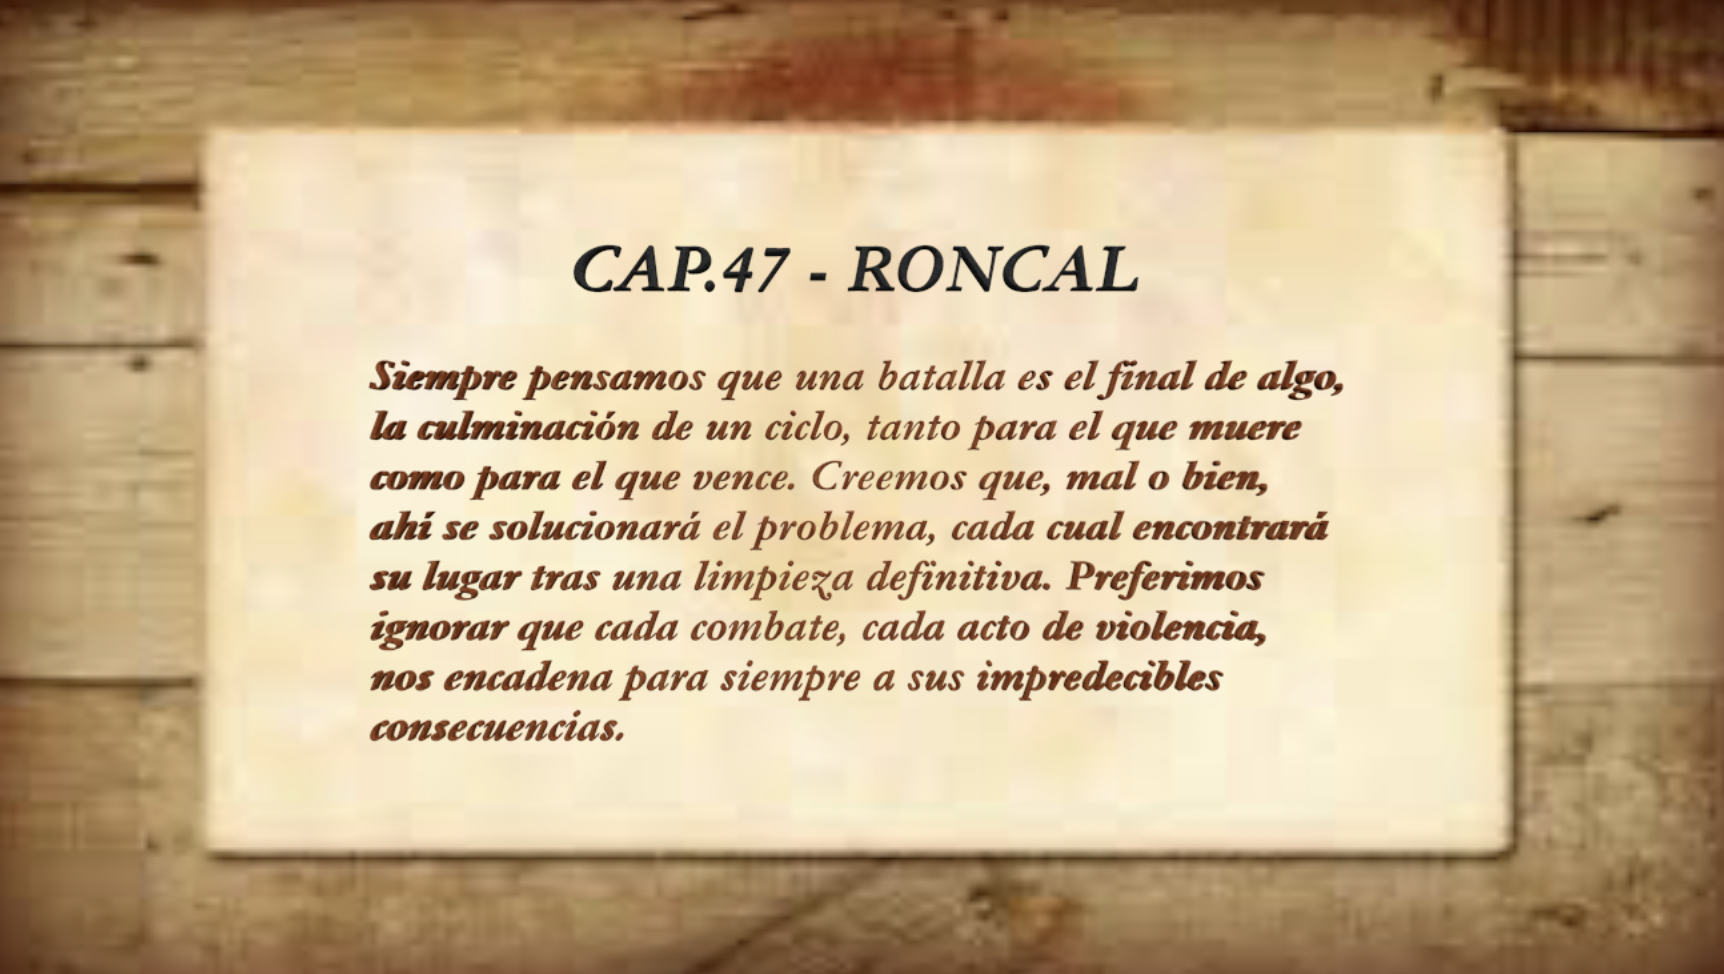 47 roncal 1